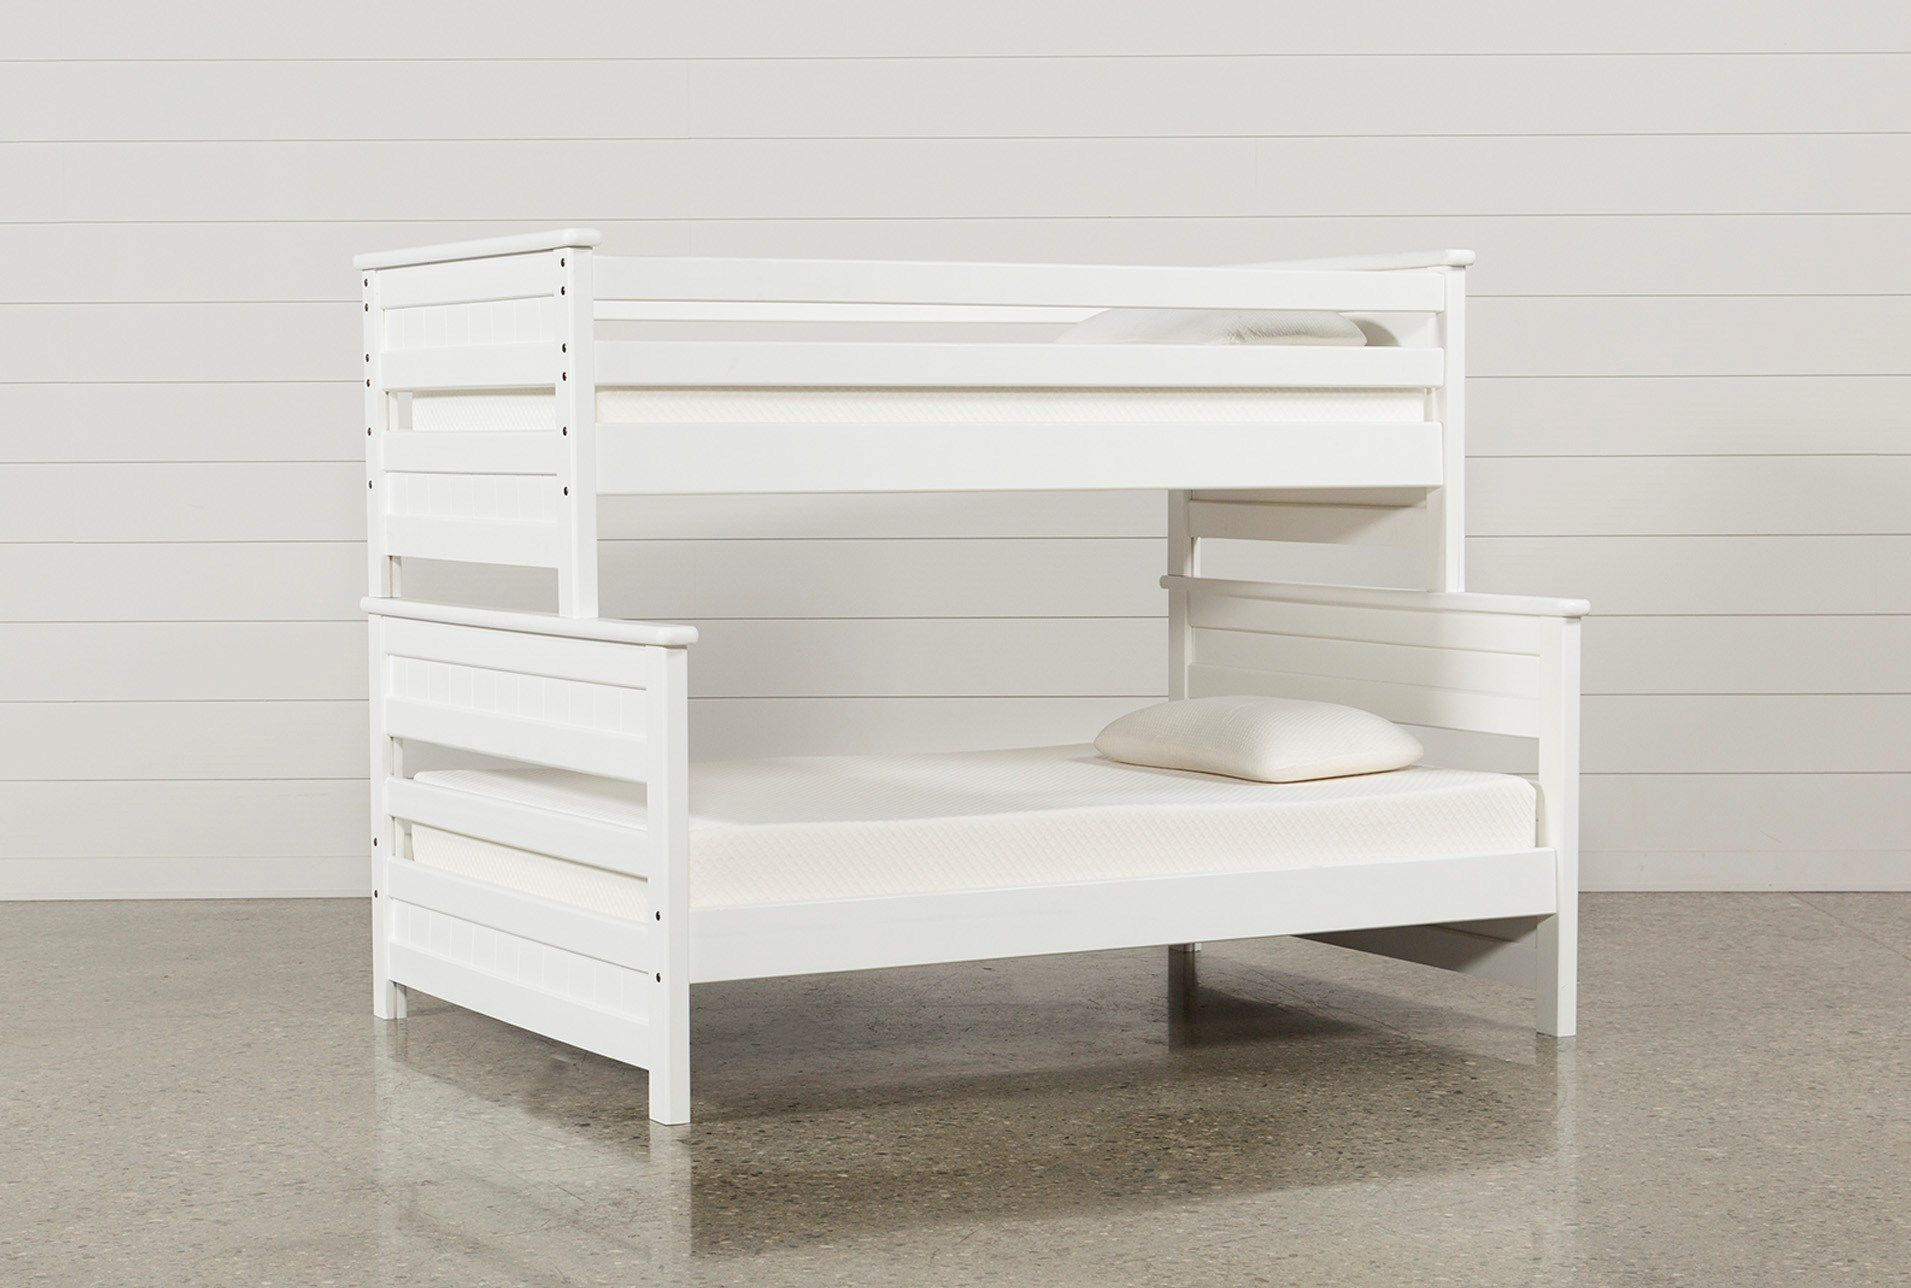 Shop For Summit White Twin Over Full Bunk Bed At Livingspaces Com Enjoy Free Store Pick Up Same Day Shipping And Free Bunk Beds Cool Bunk Beds Kids Bunk Beds White twin over full bunk bed